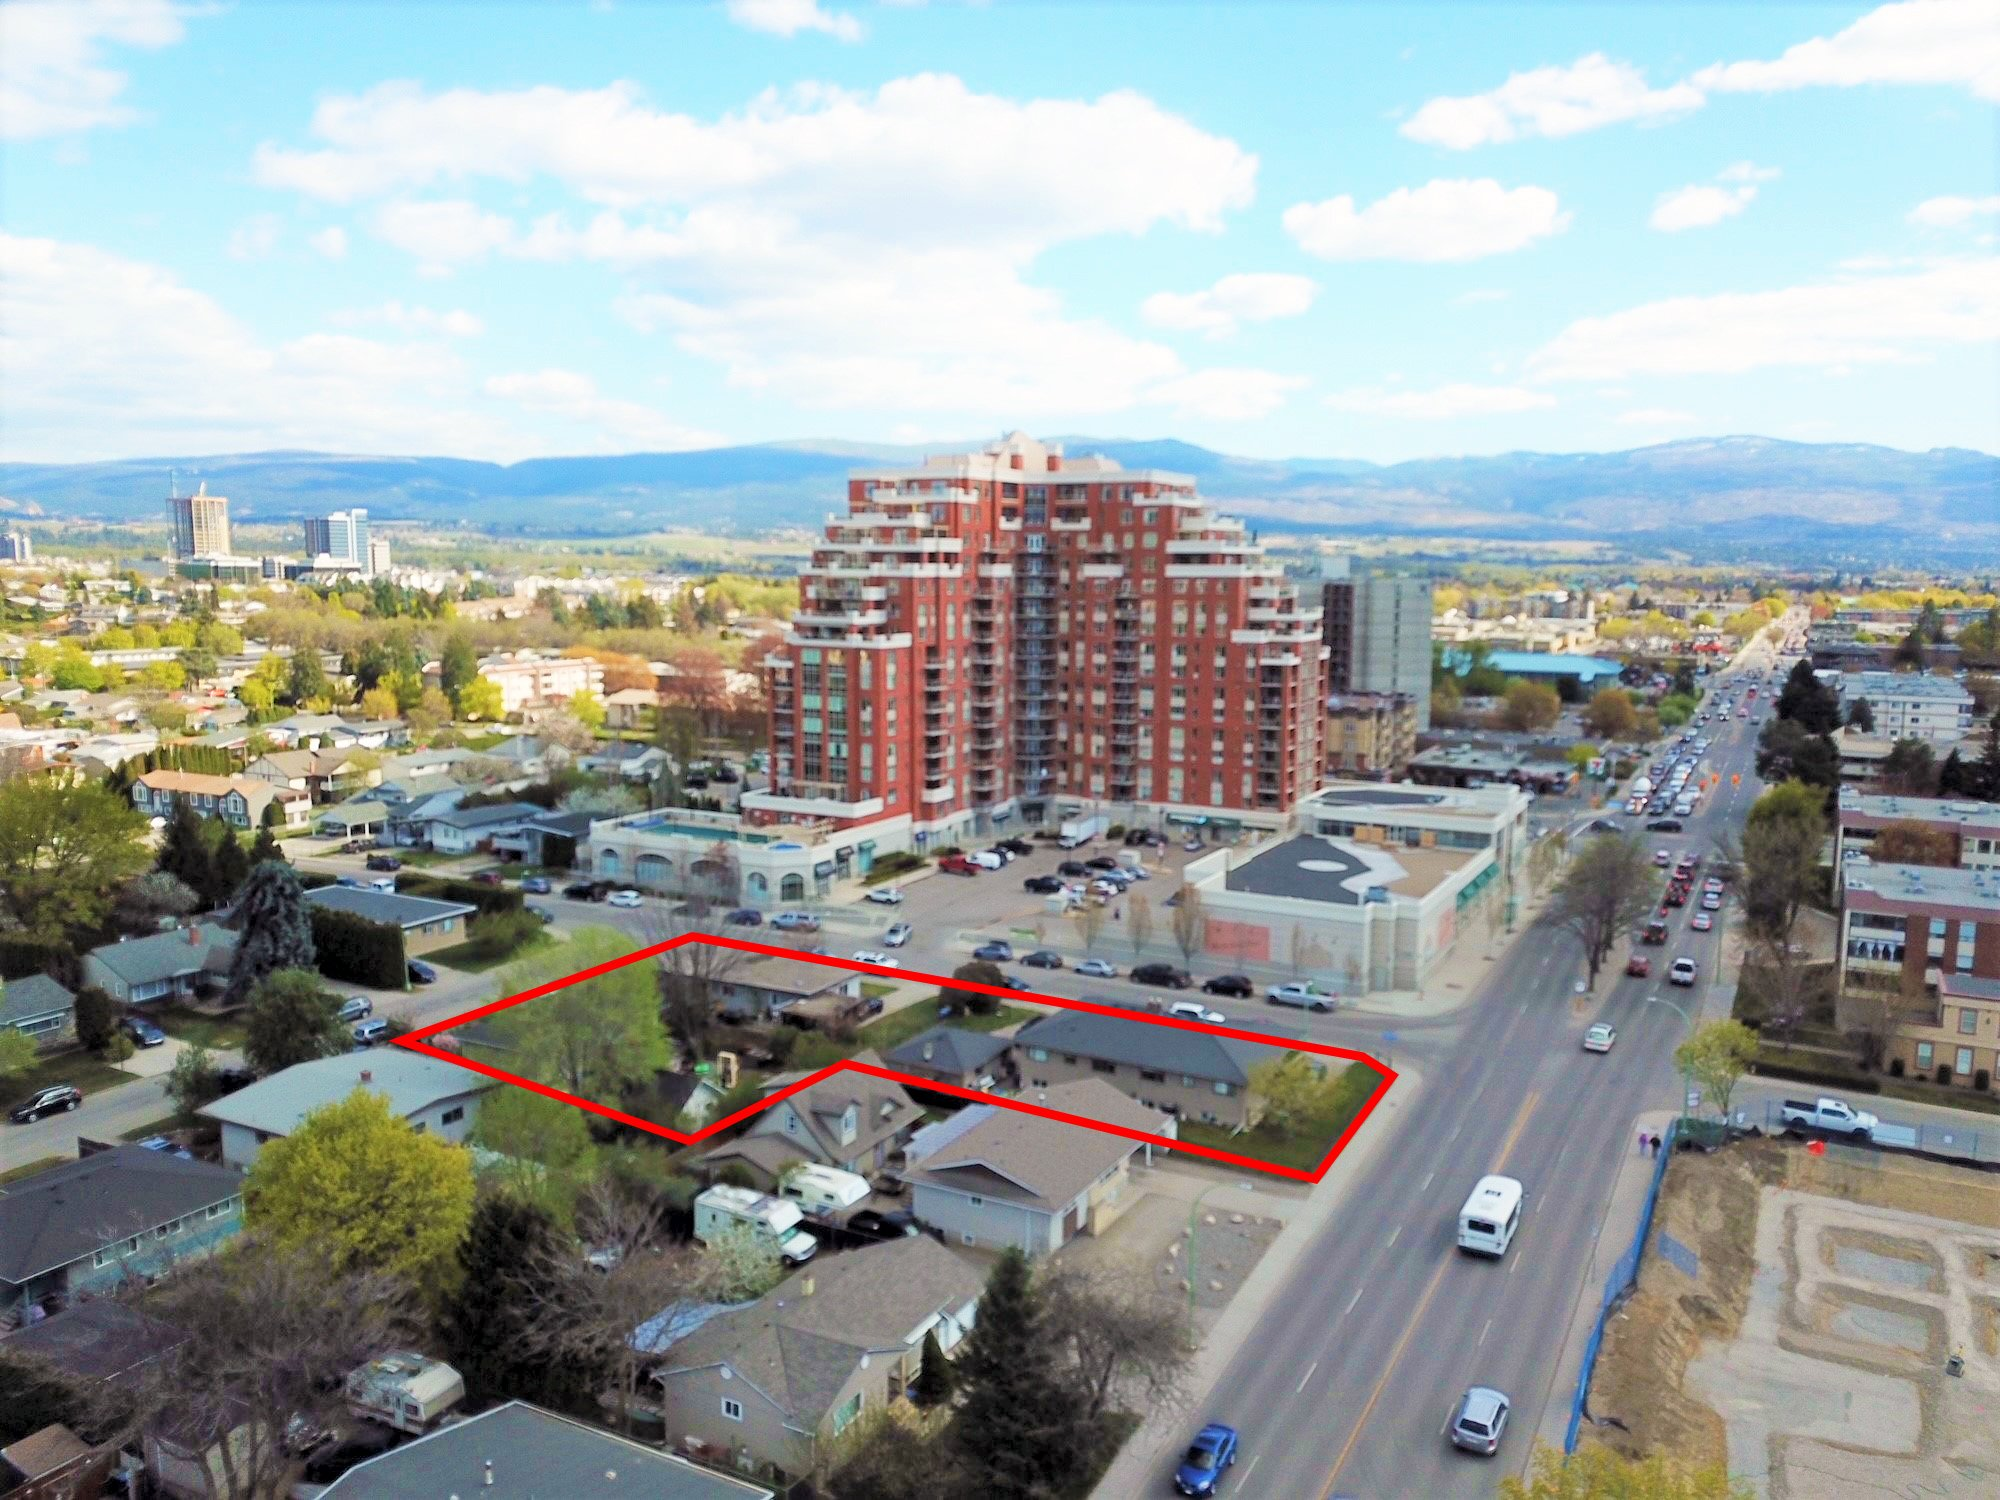 1104-1130 Lawson Avenue & 1488 Aspen Court, Kelowna, BC - Prime Redevelopment Site with Holding Income (4% Cap Rate)